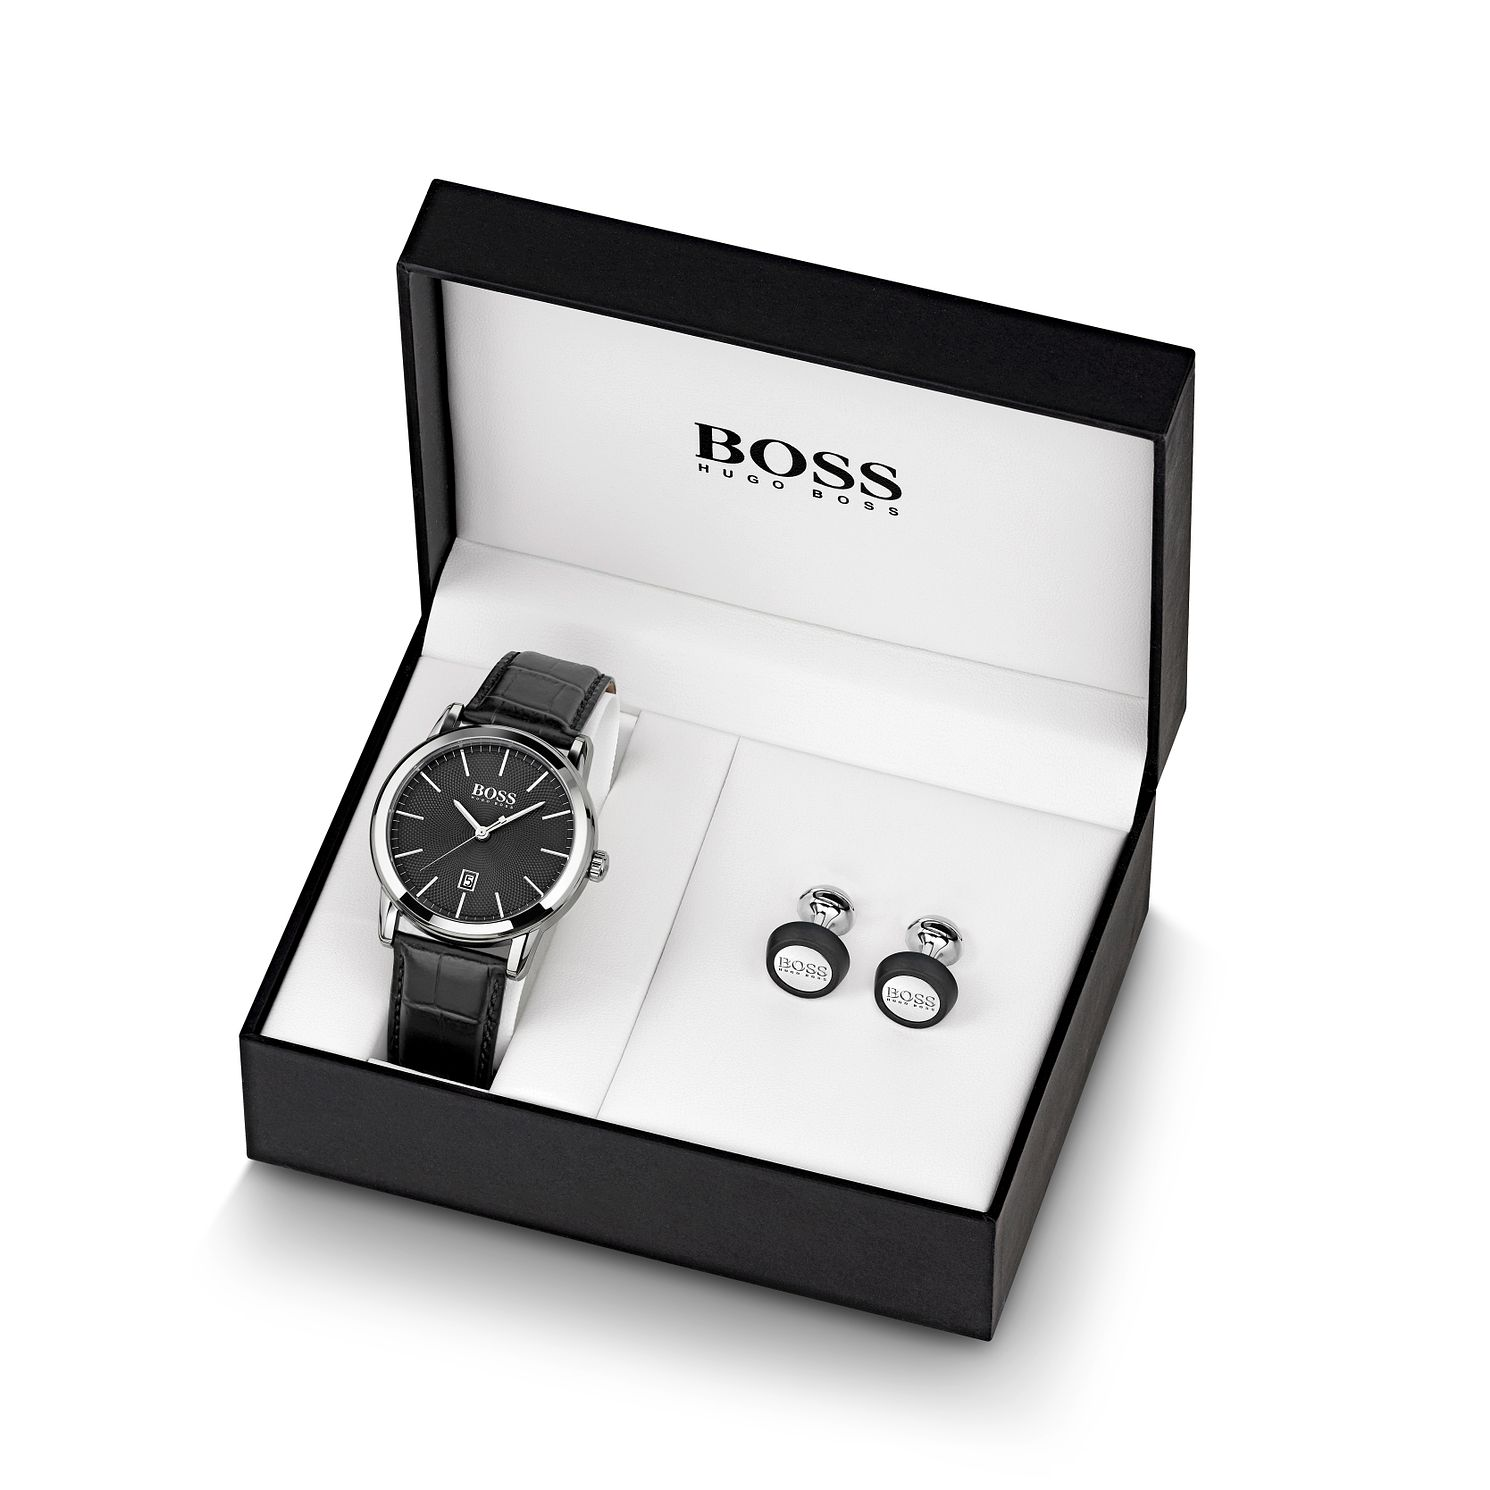 BOSS Classic Men's Watch & Cufflinks Gift Set - Product number 2776510